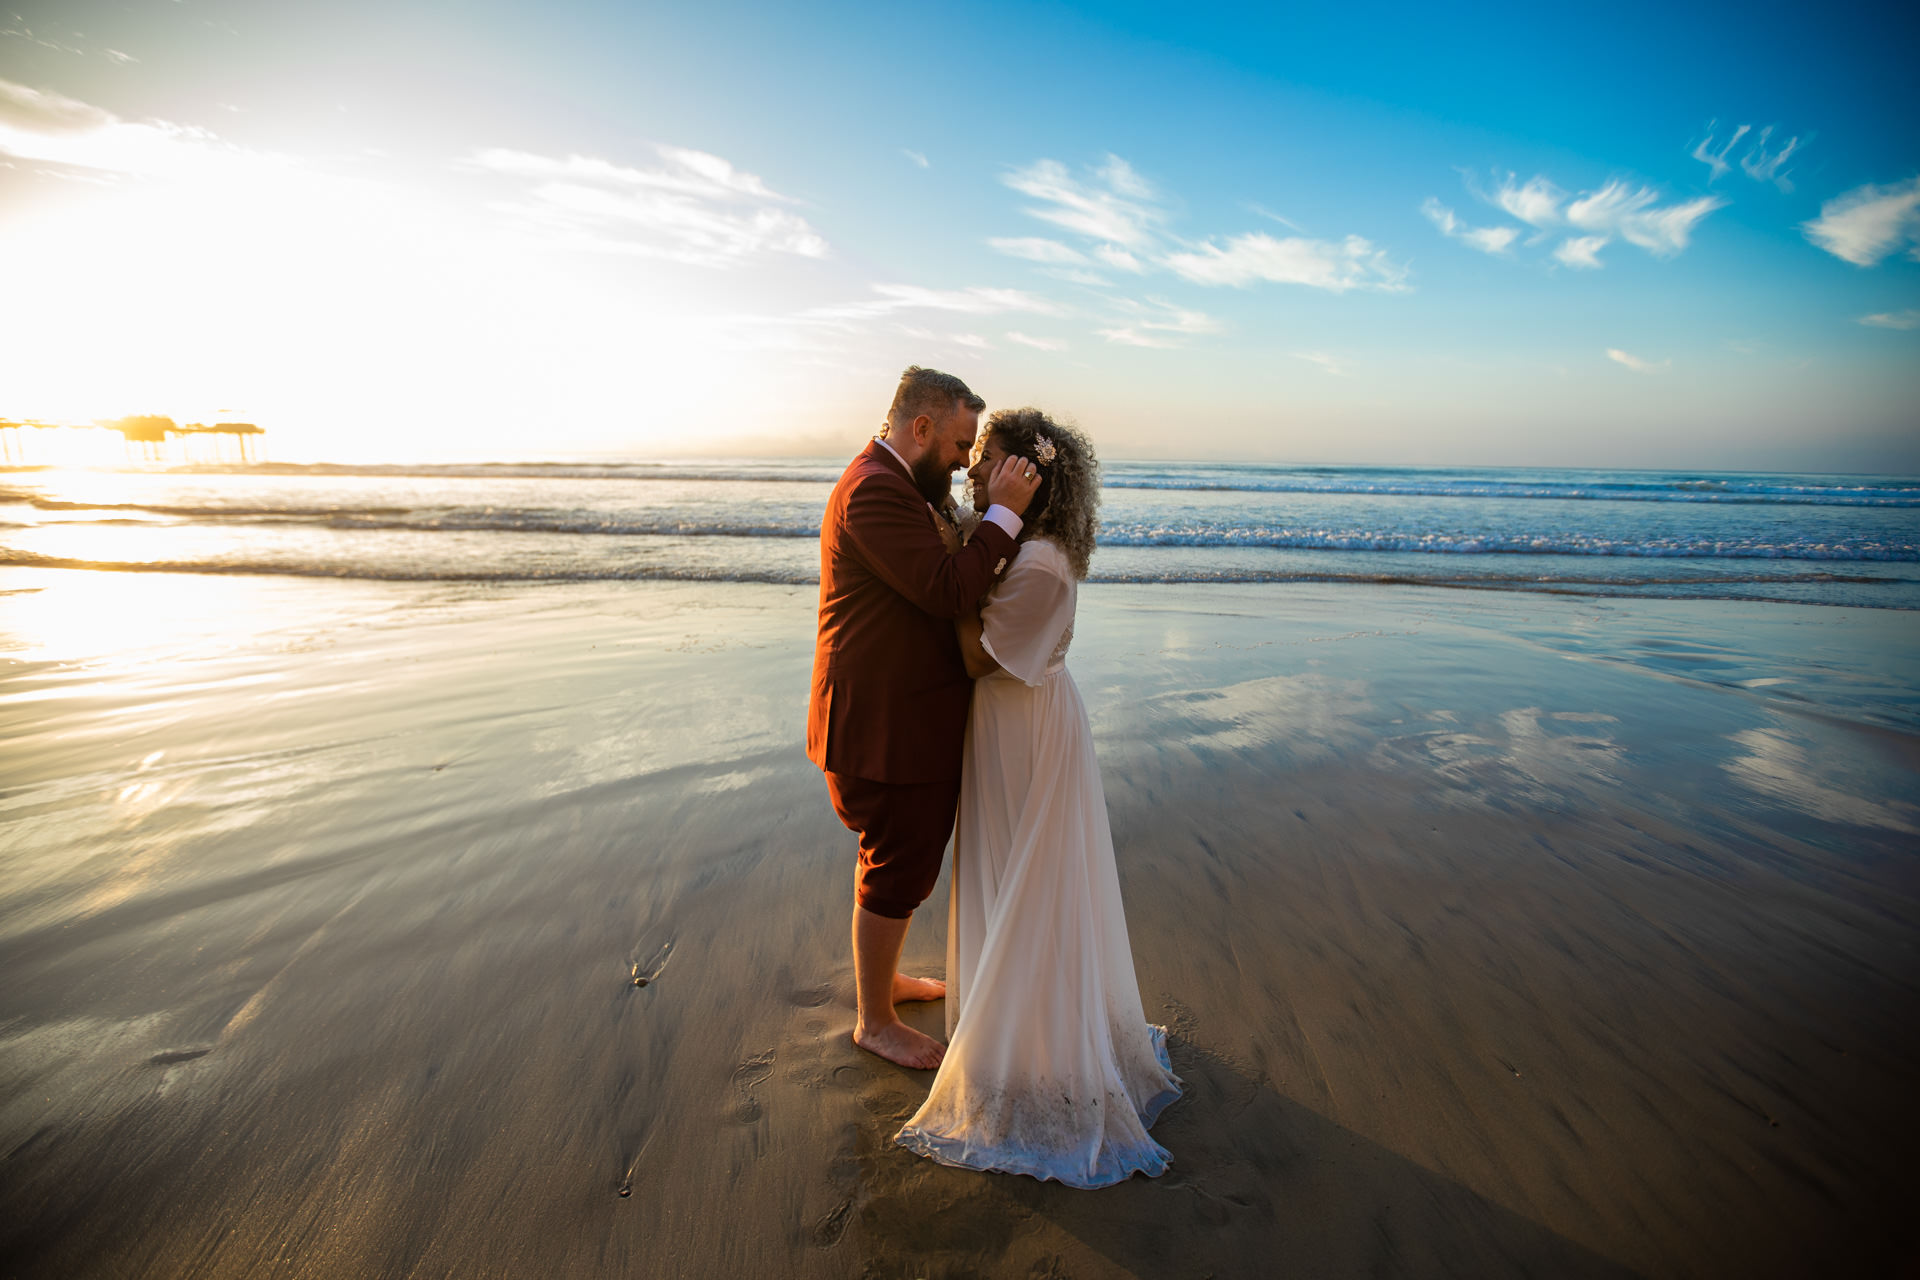 Eruc Gerusa Couple Portrait La Jolla San Diego Beach Wedding Sunset by Faces Photography